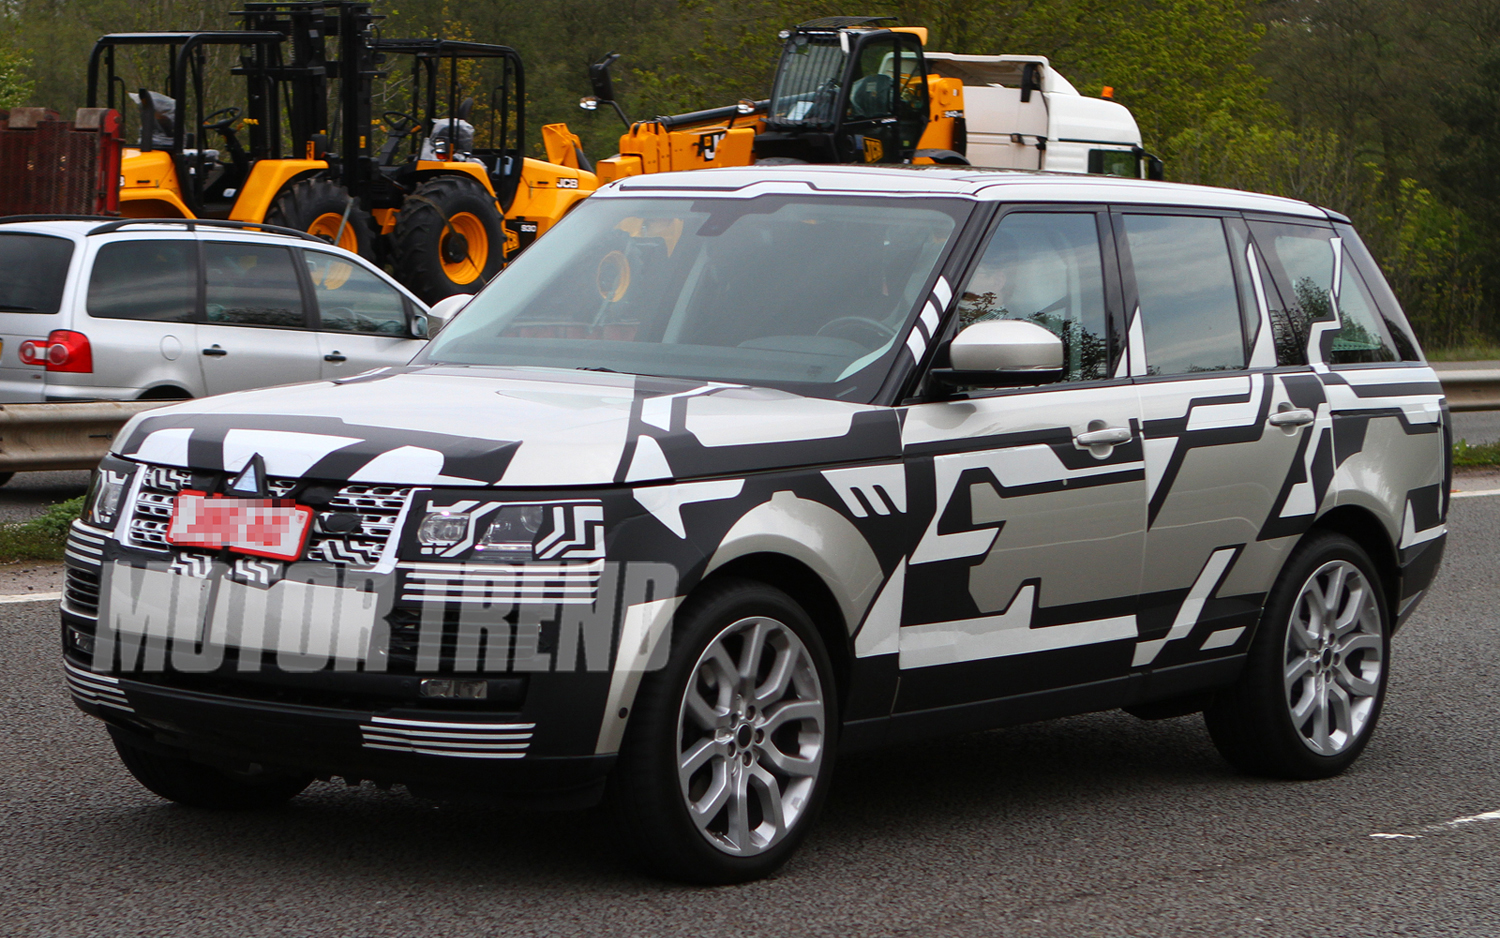 We Hear Seven Seat Range Rover Evoque Range Rover Sport In Works